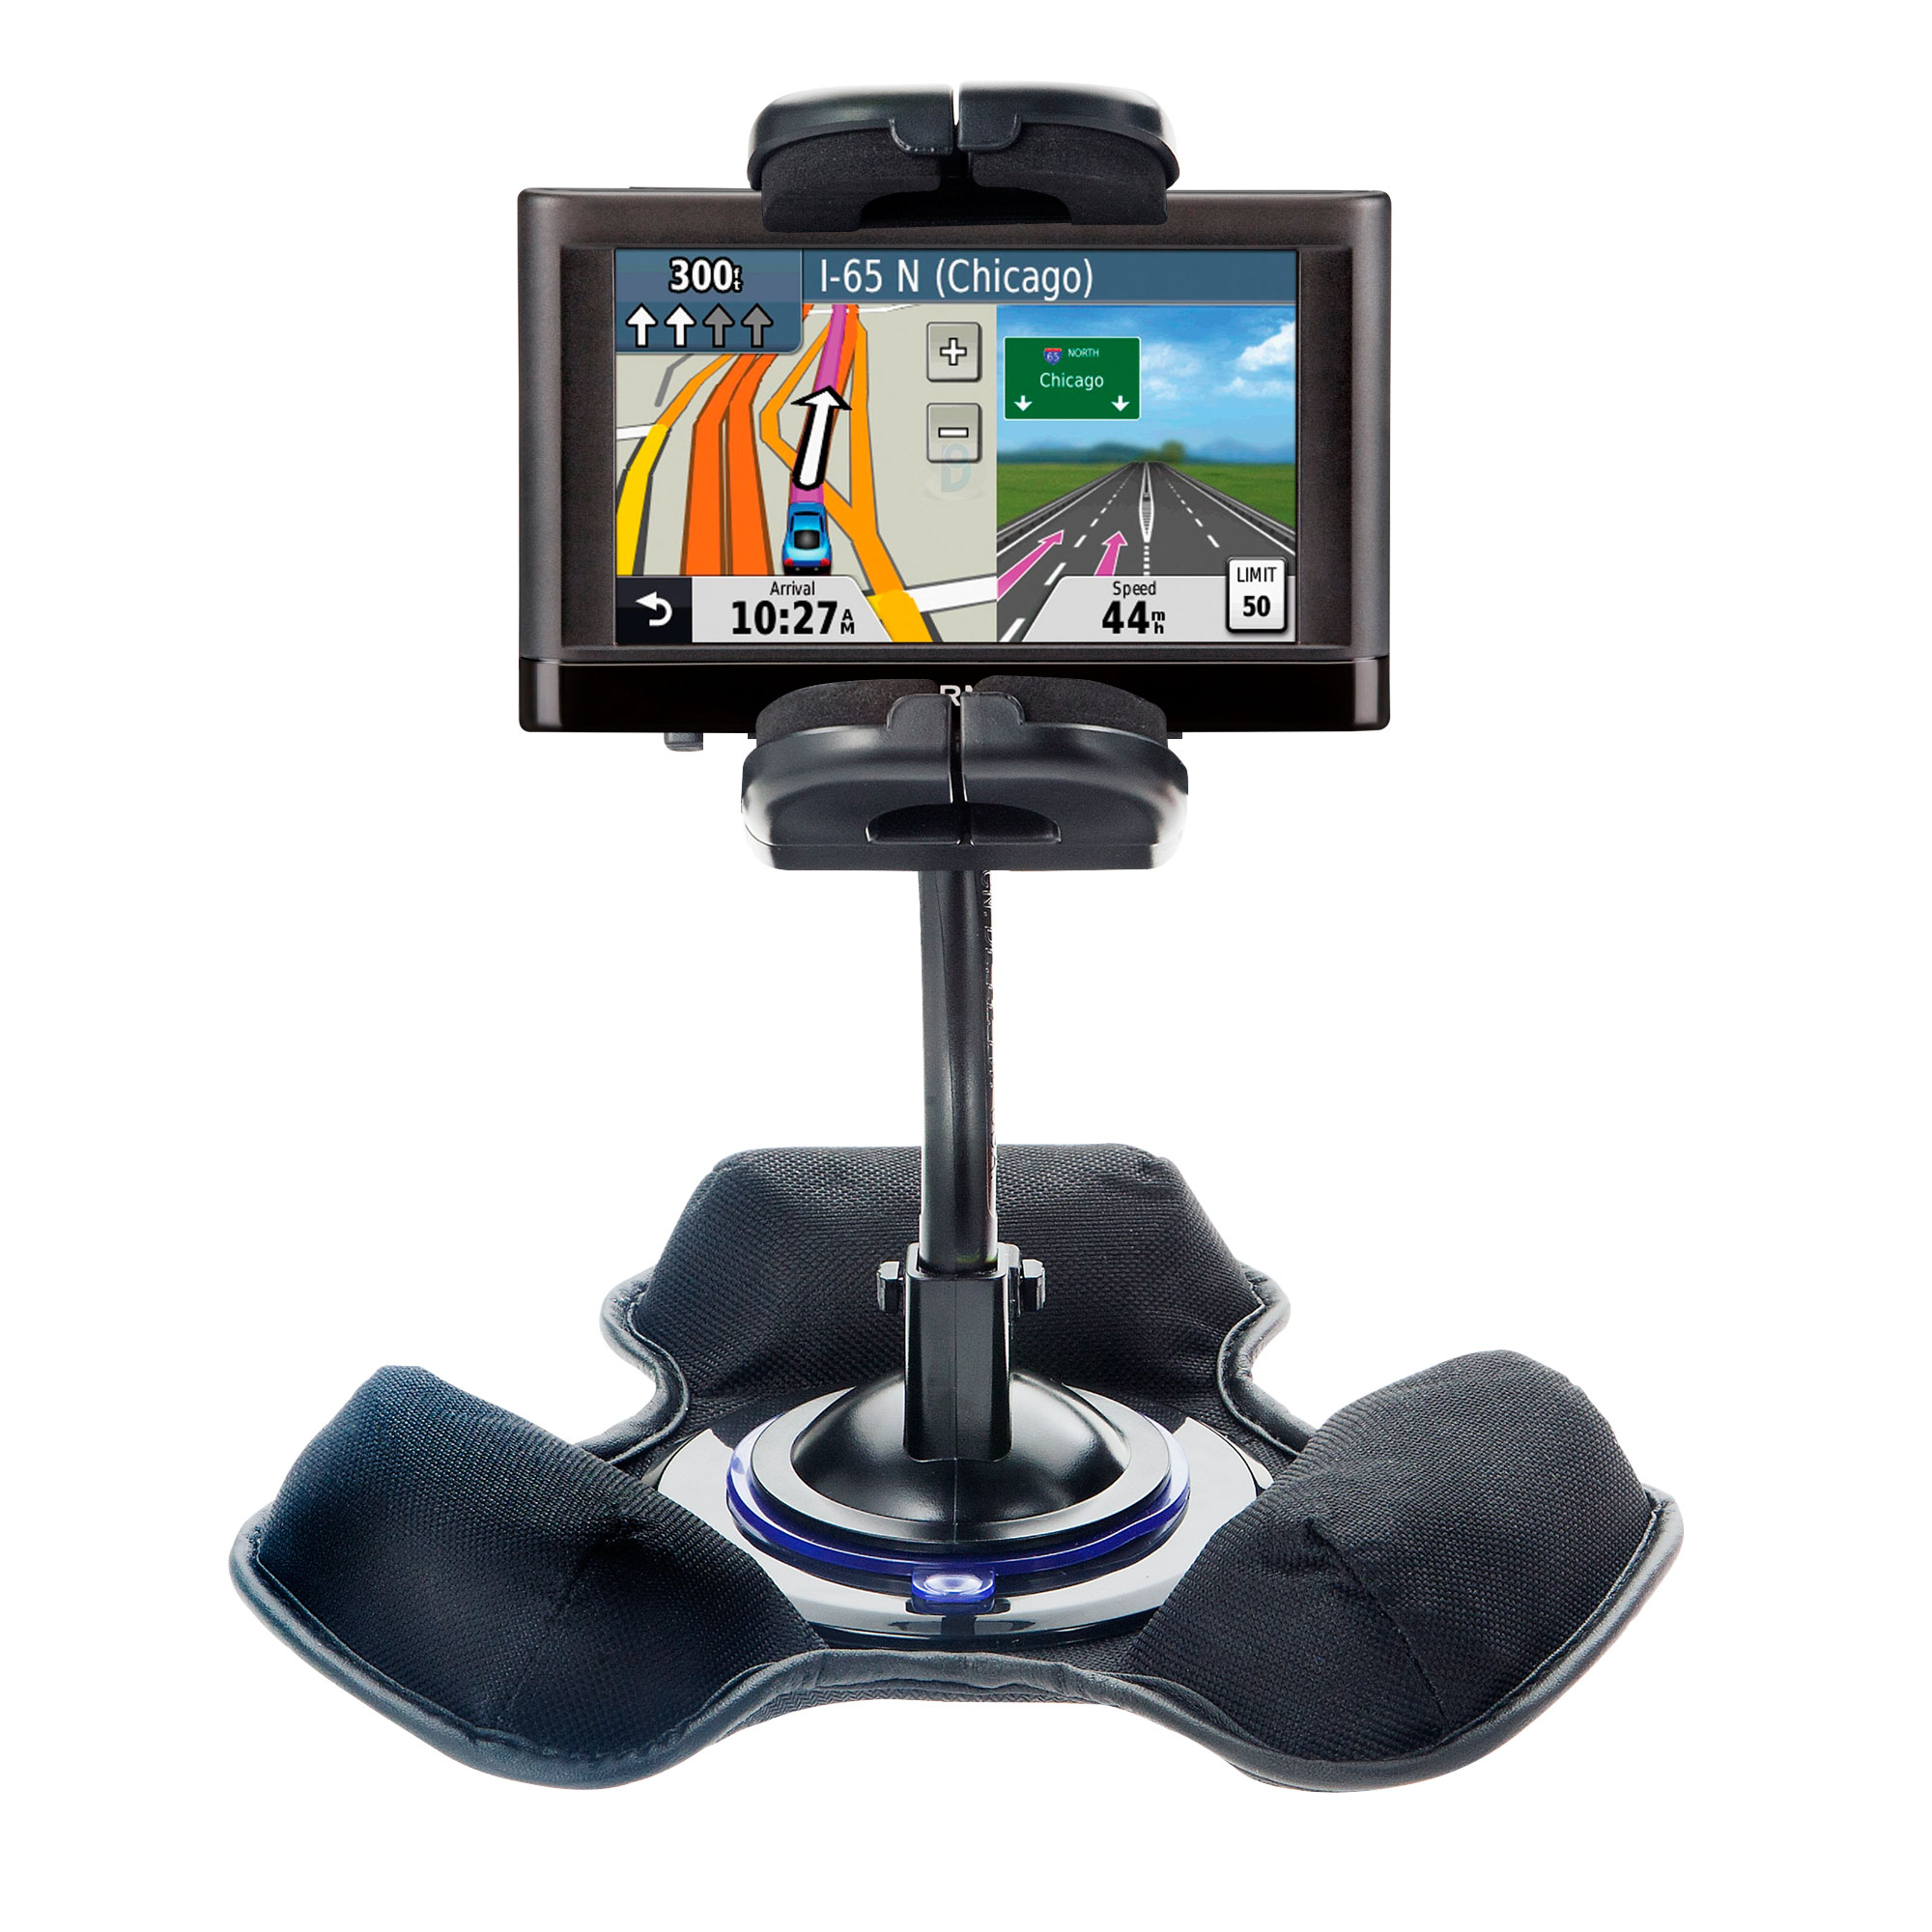 Dash and Windshield Holder compatible with the Garmin nuvi 44